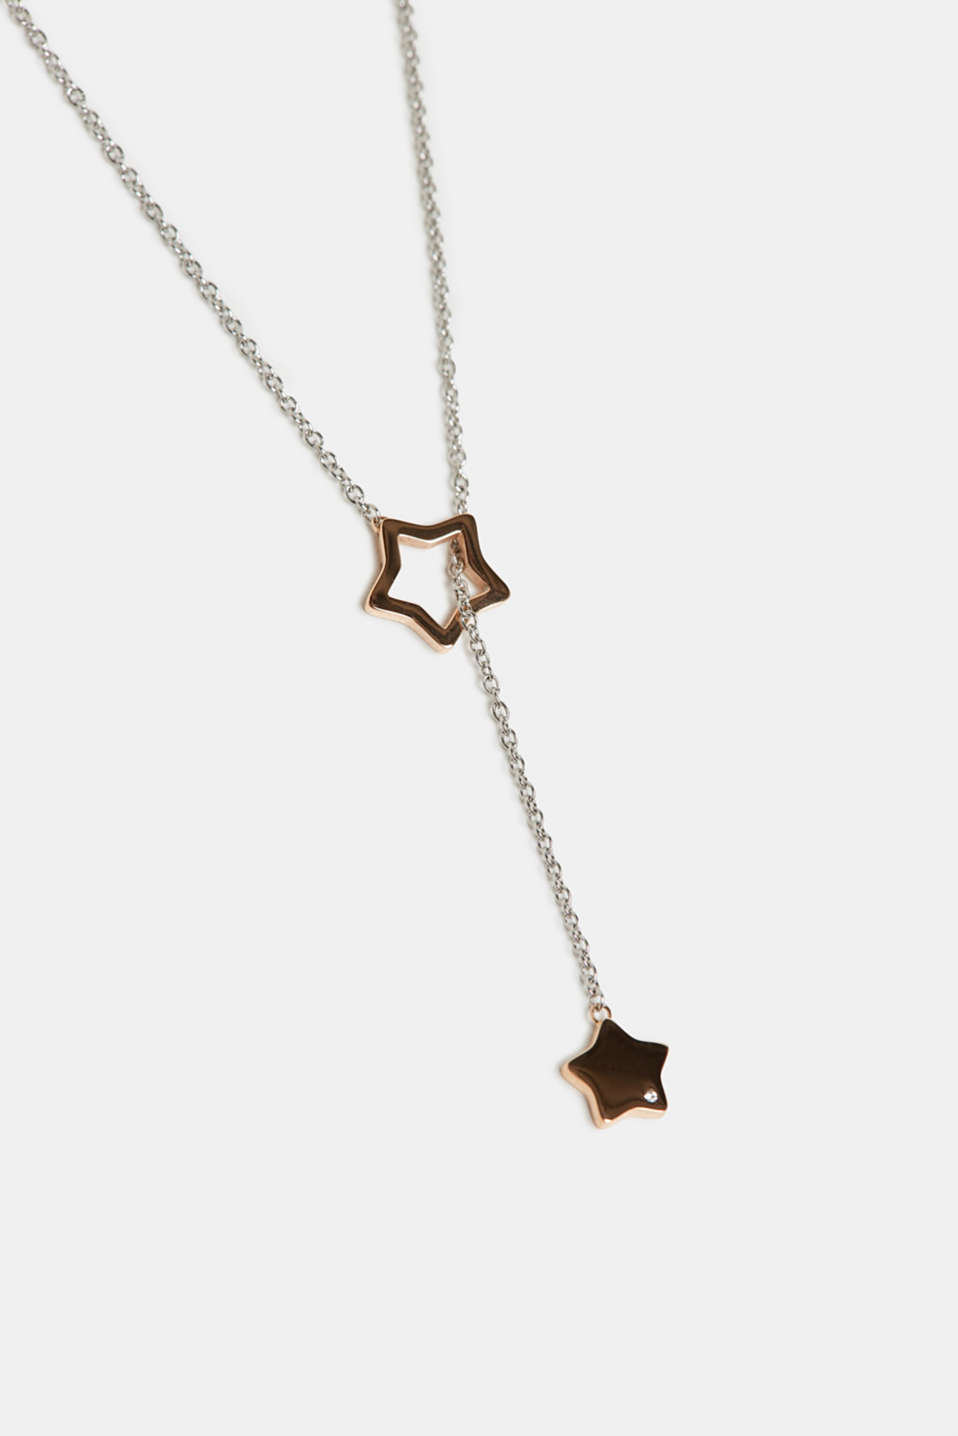 Necklace with star pendants, stainless steel, ROSEGOLD, detail image number 1